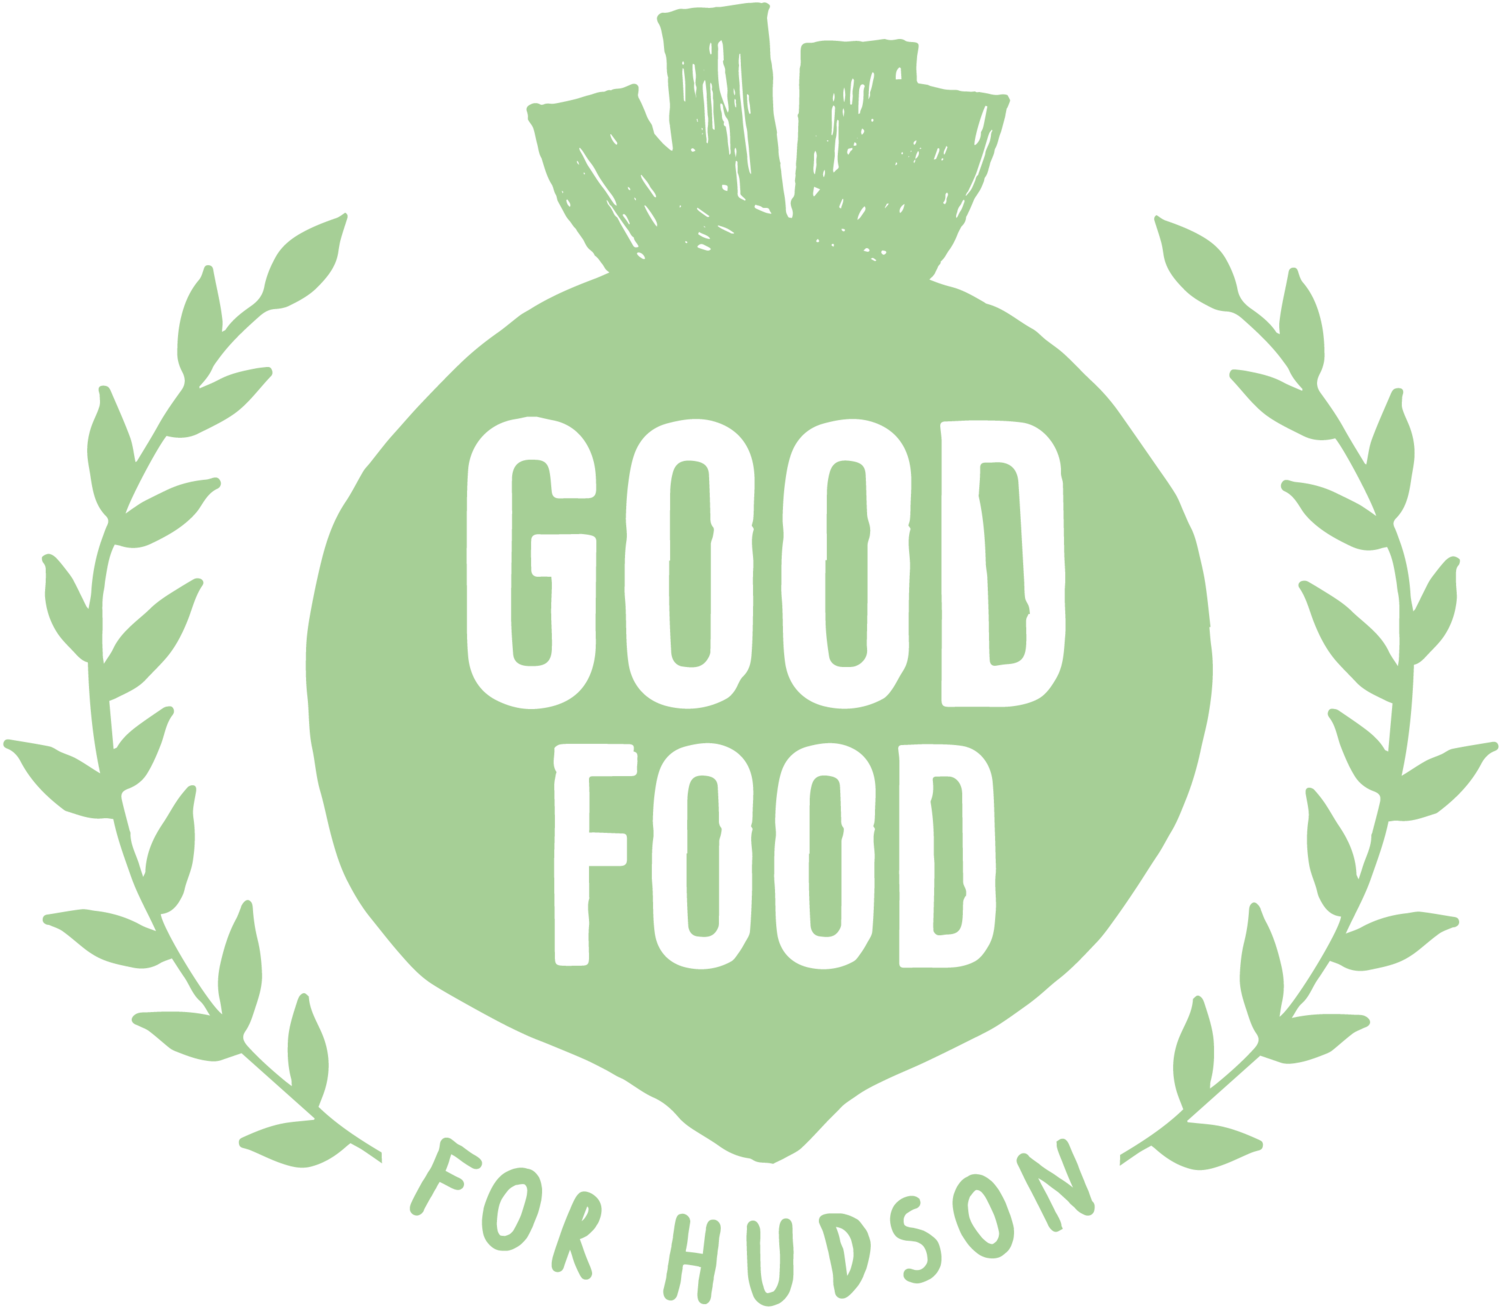 Good Food For Hudson